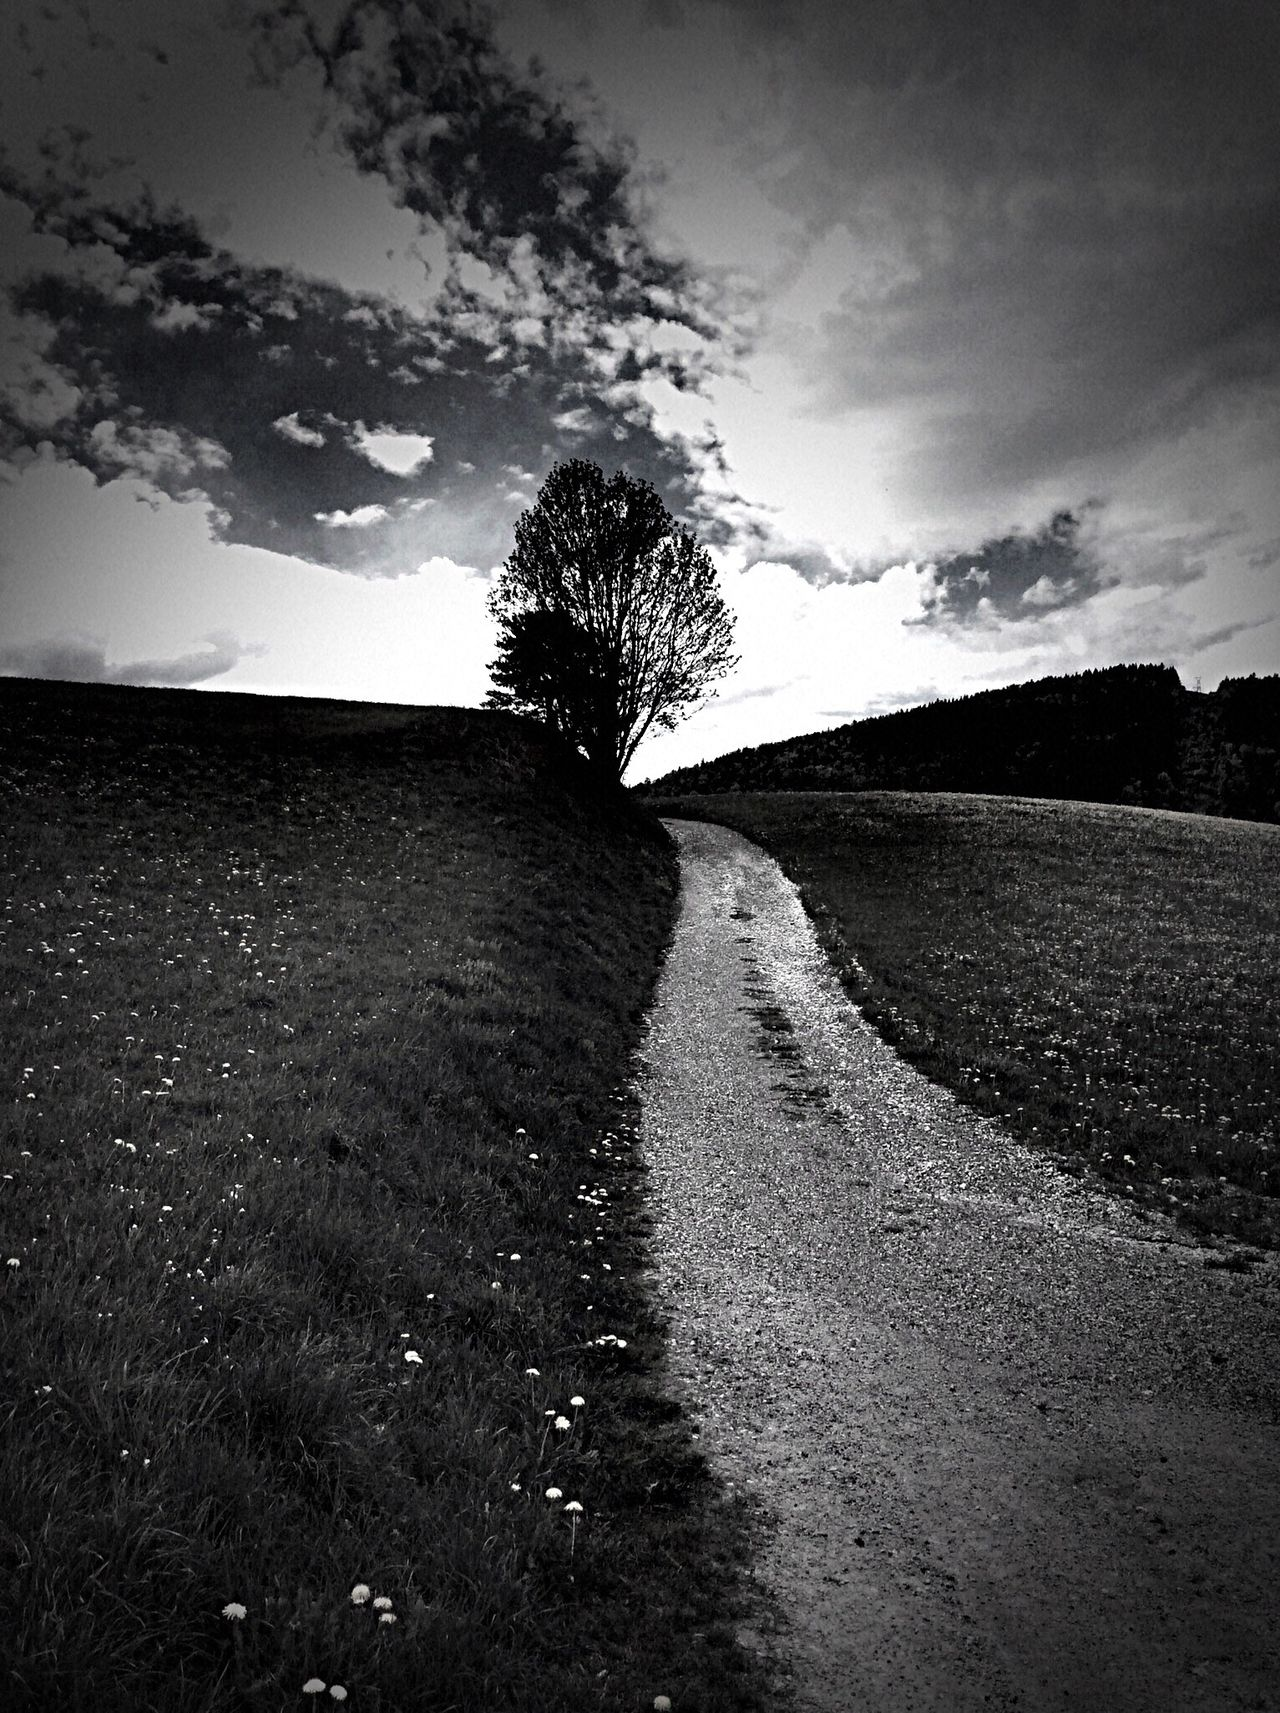 Road The Way Forward Cloud - Sky No People Nature The Great Outdoors - 2017 EyeEm Awards Beauty In Nature Noir Et Blanc Mountain Blackandwhite Photography AMPt_community Shootermag Shootermag_france BYOPaper!